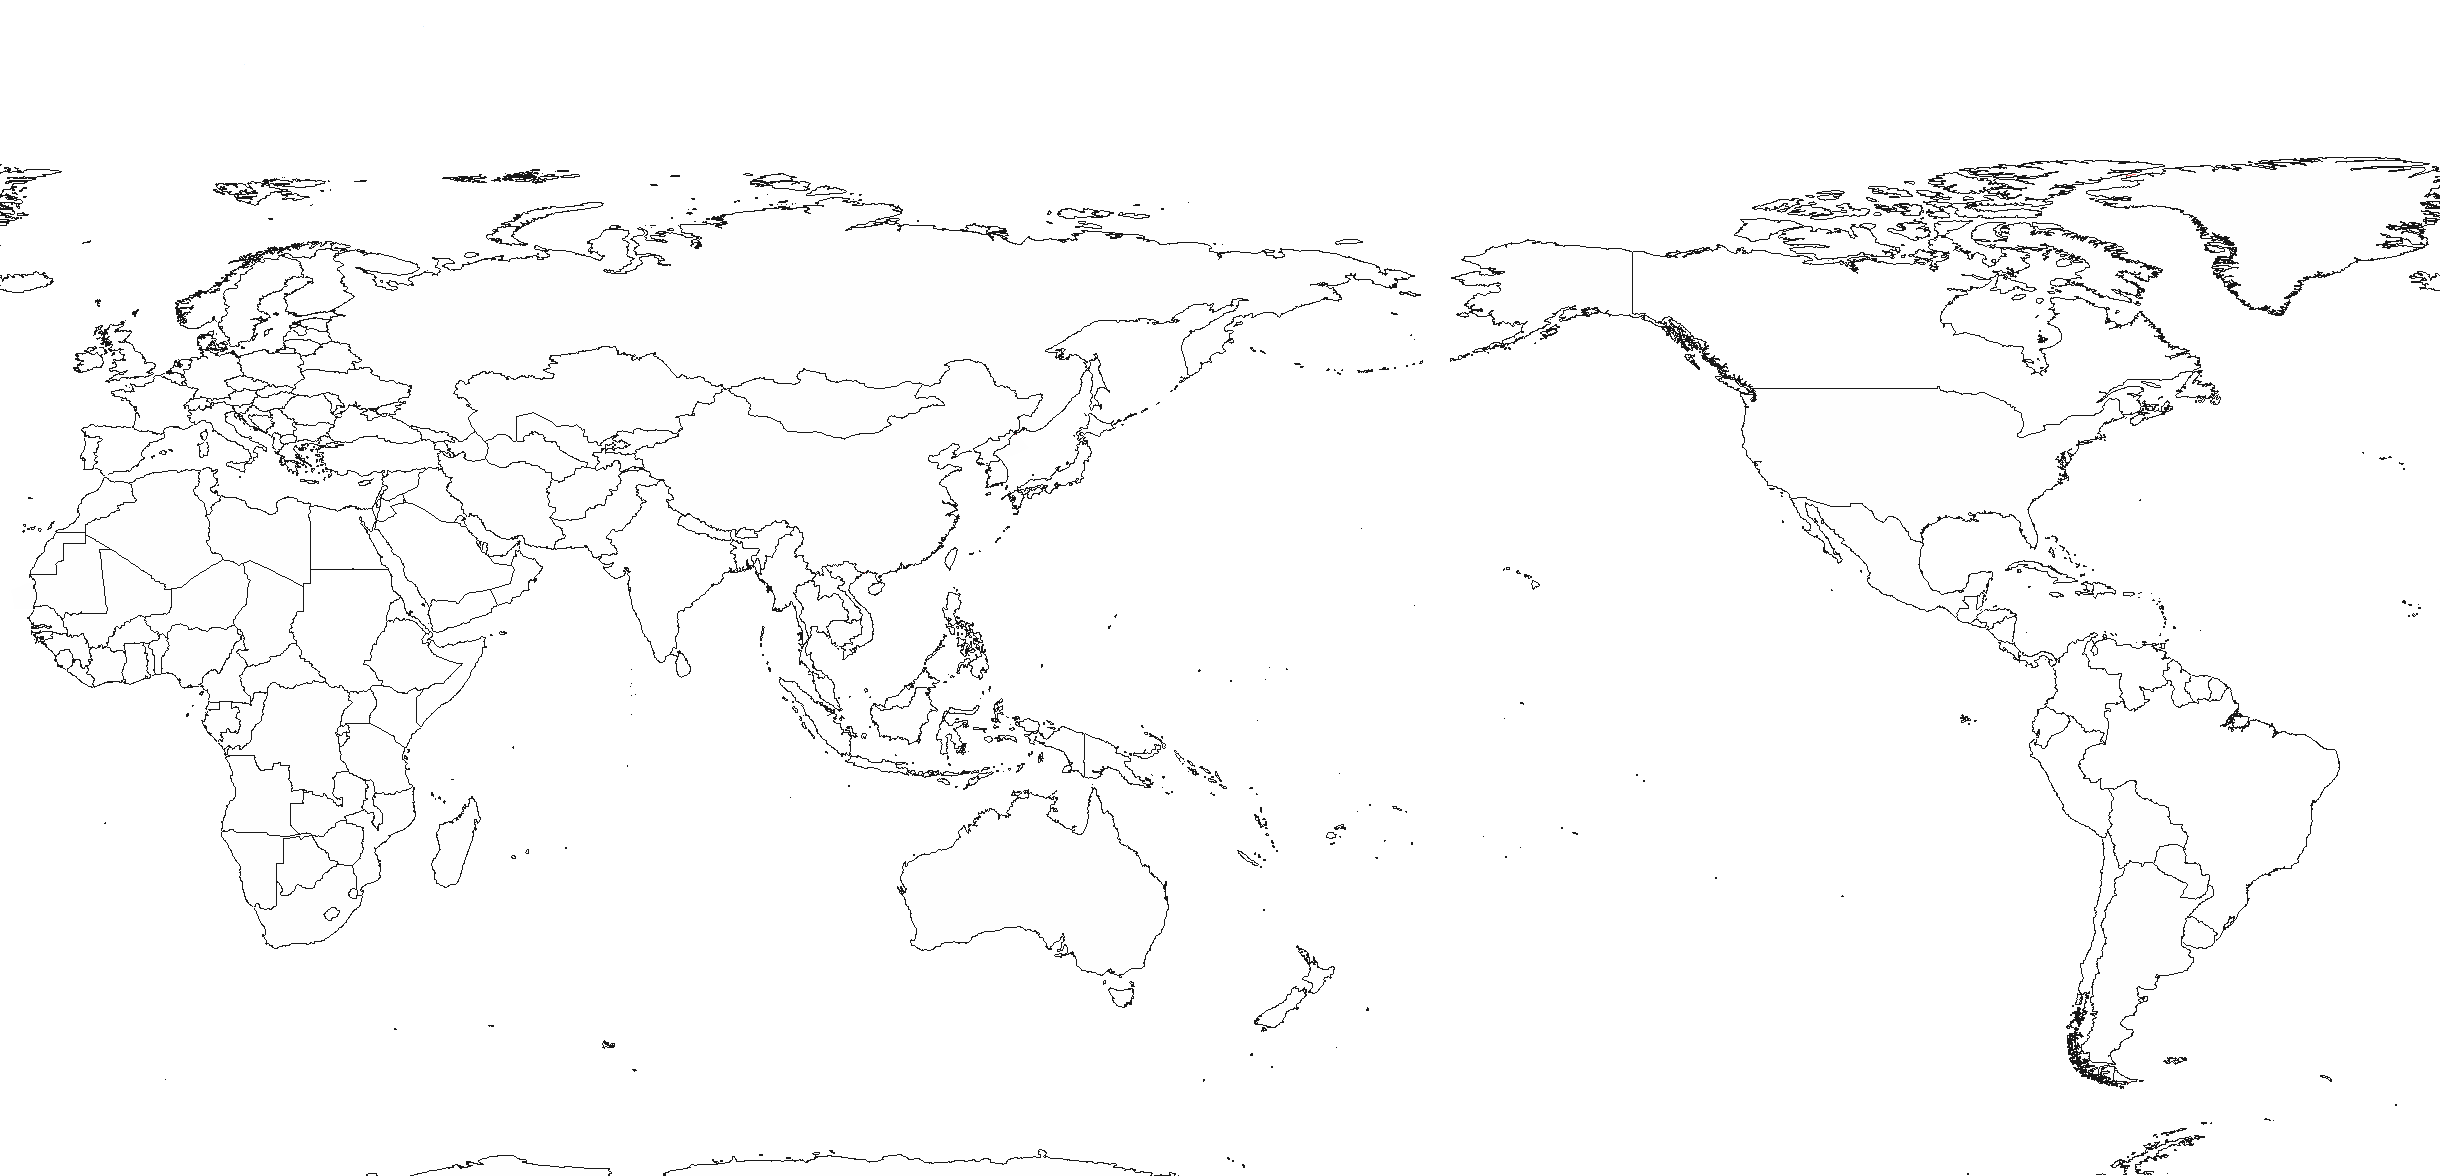 Filewhite world mappacfic centered blankg wikimedia commons filewhite world mappacfic centered blankg gumiabroncs Choice Image